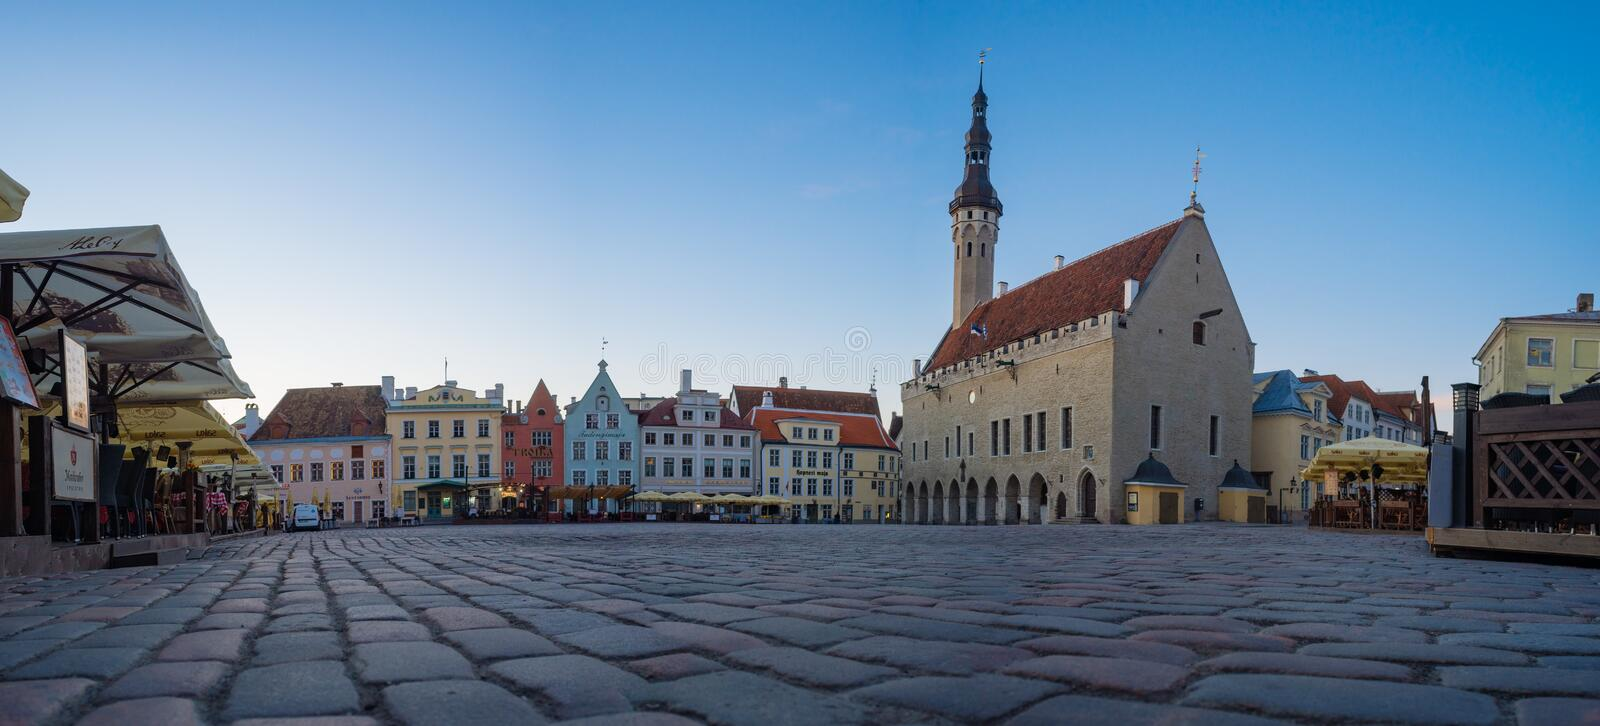 Panorama of the Town hall and Raekoja square, Tallinn royalty free stock image